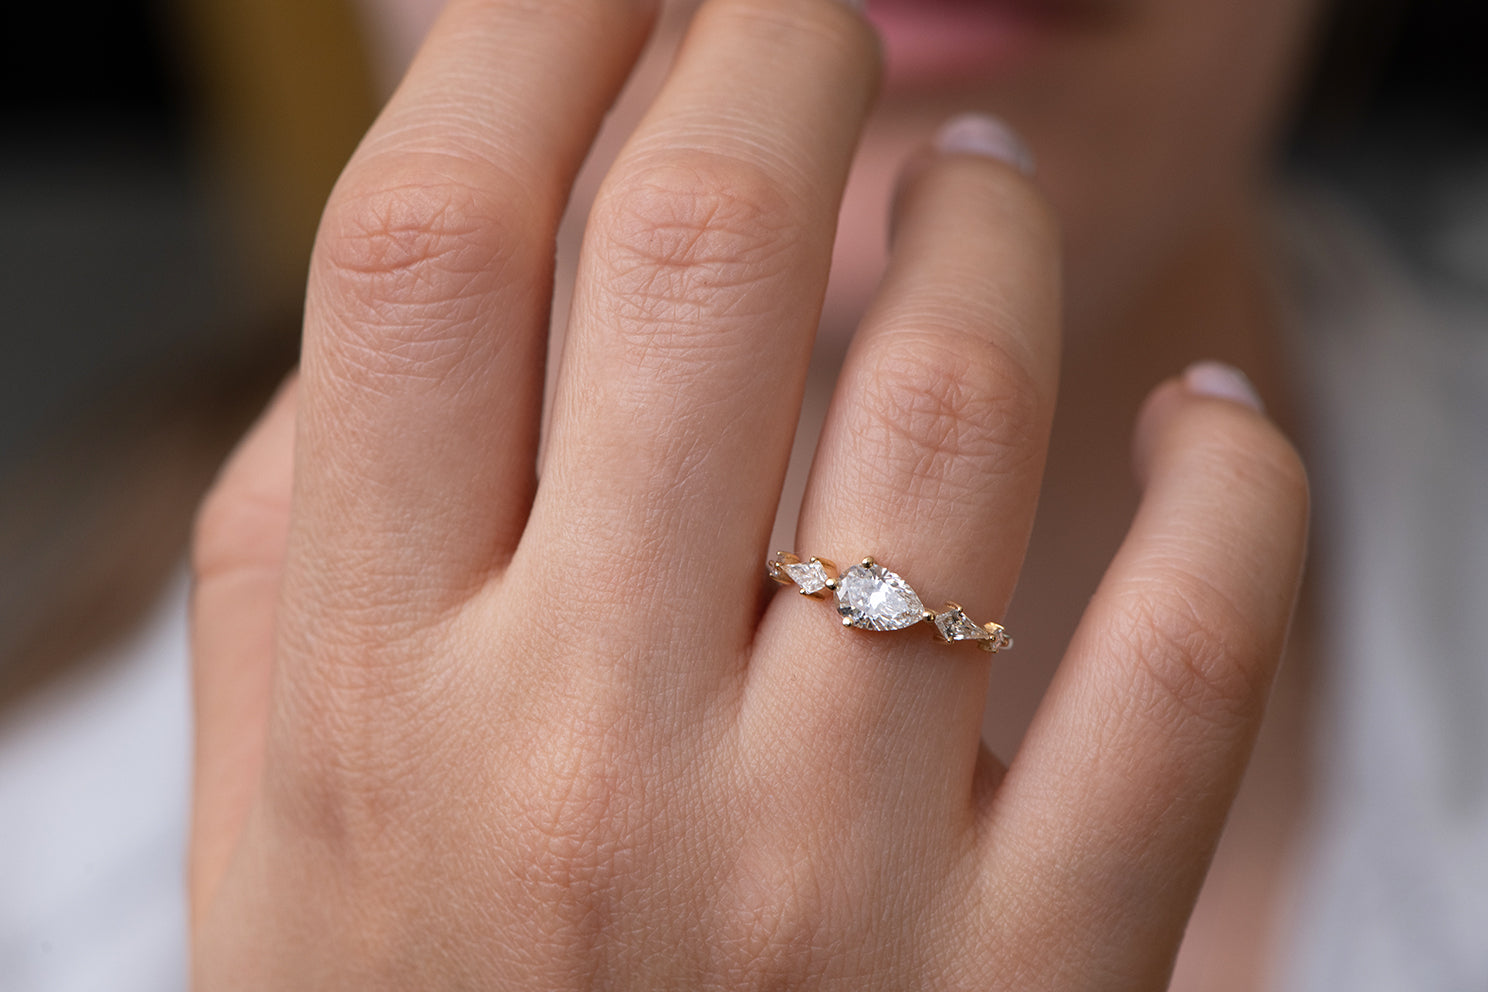 Pear Shaped Engagement Ring - Diamond Lineup Ring Front Shot Other Angle